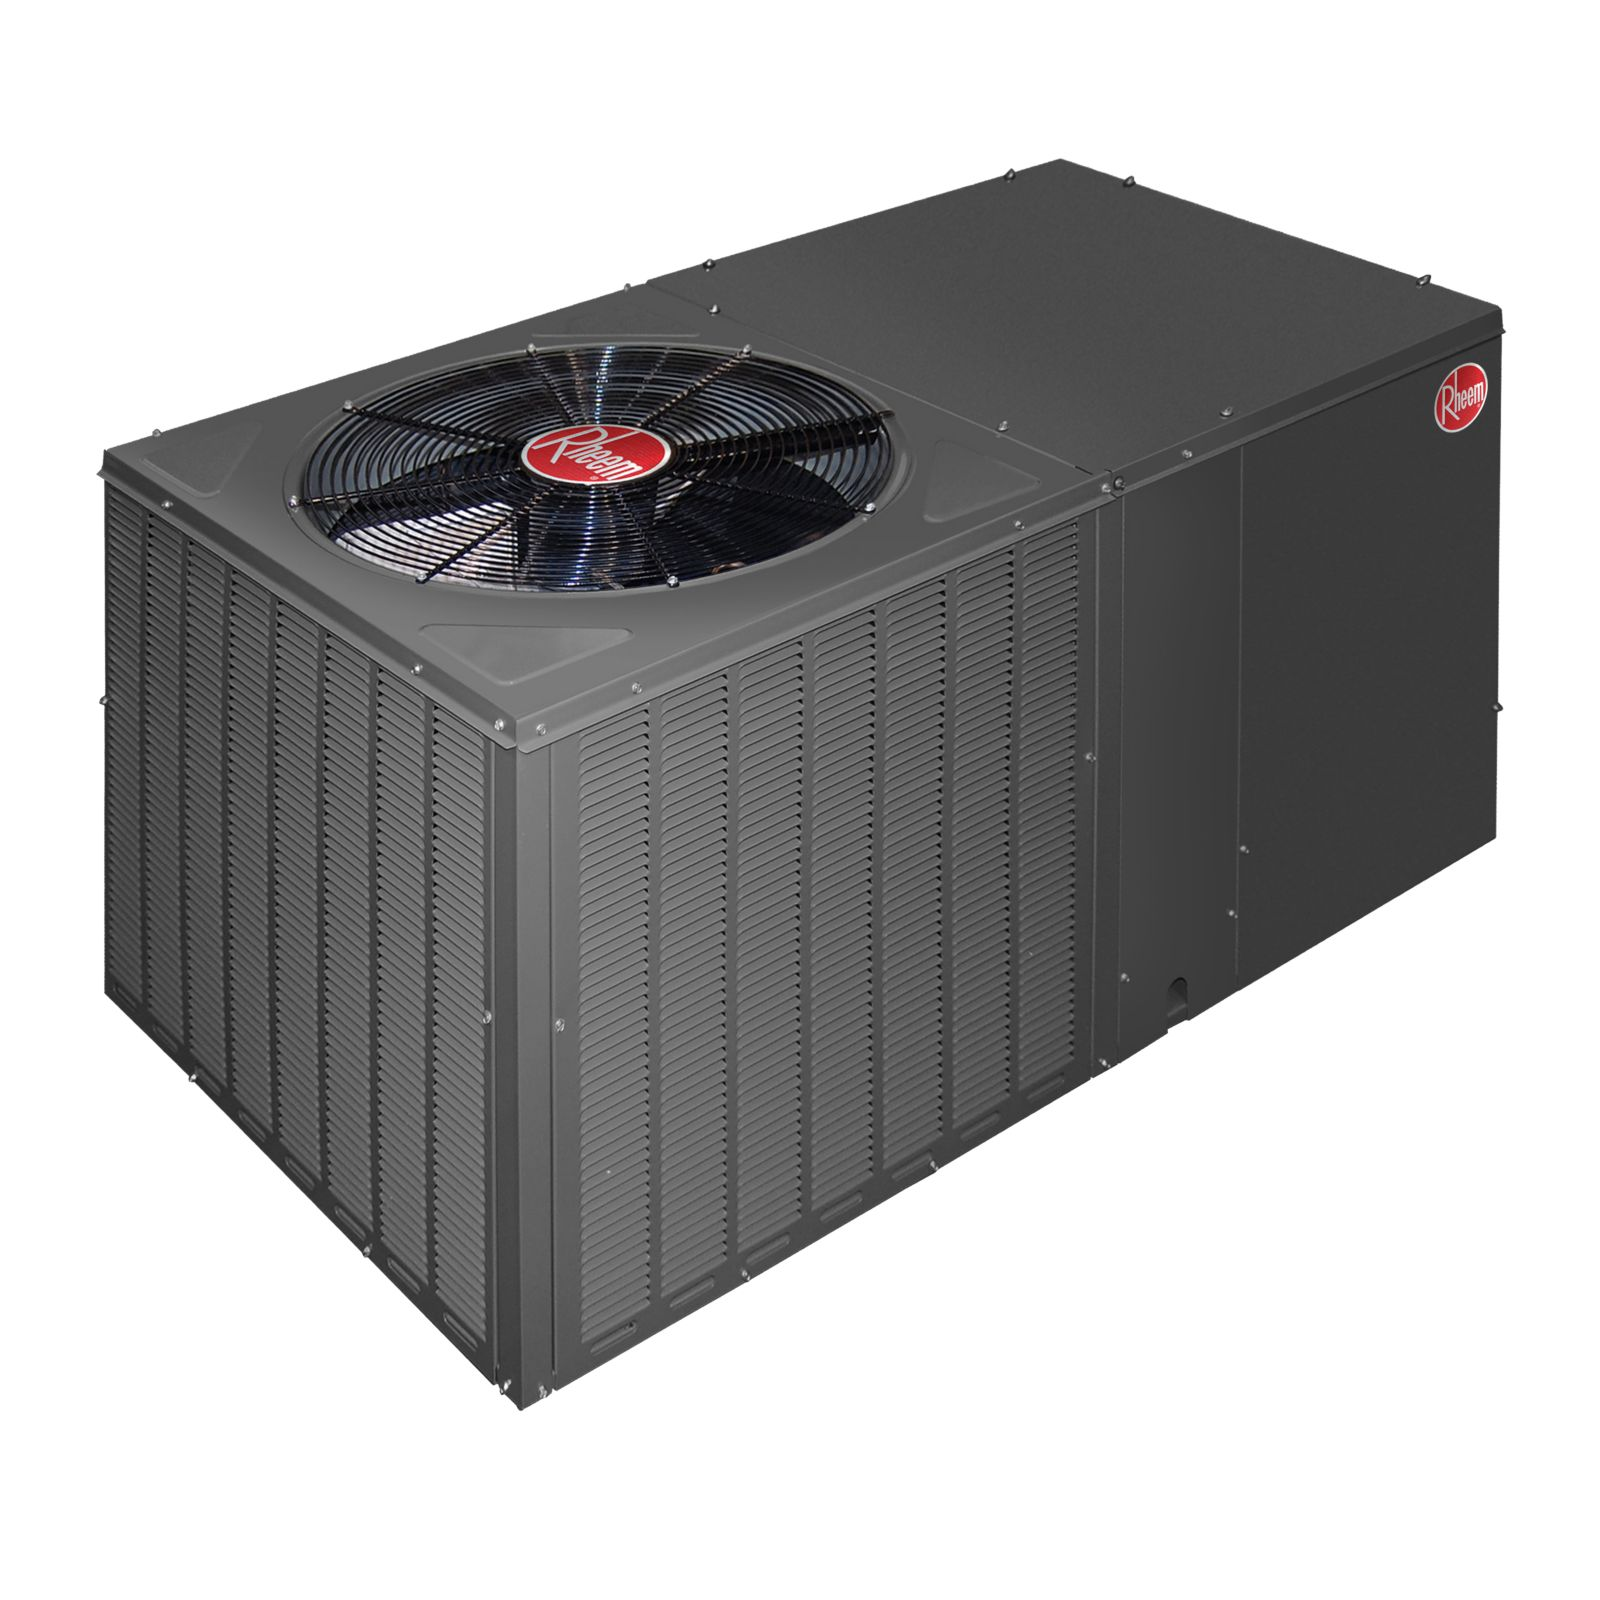 Rheem RQRM-A036JK000AUA - Classic 3 Ton 15/16 SEER, R-410A, Packaged Heat Pump With Horizontal Discharge, 208-230V, 1 Phase